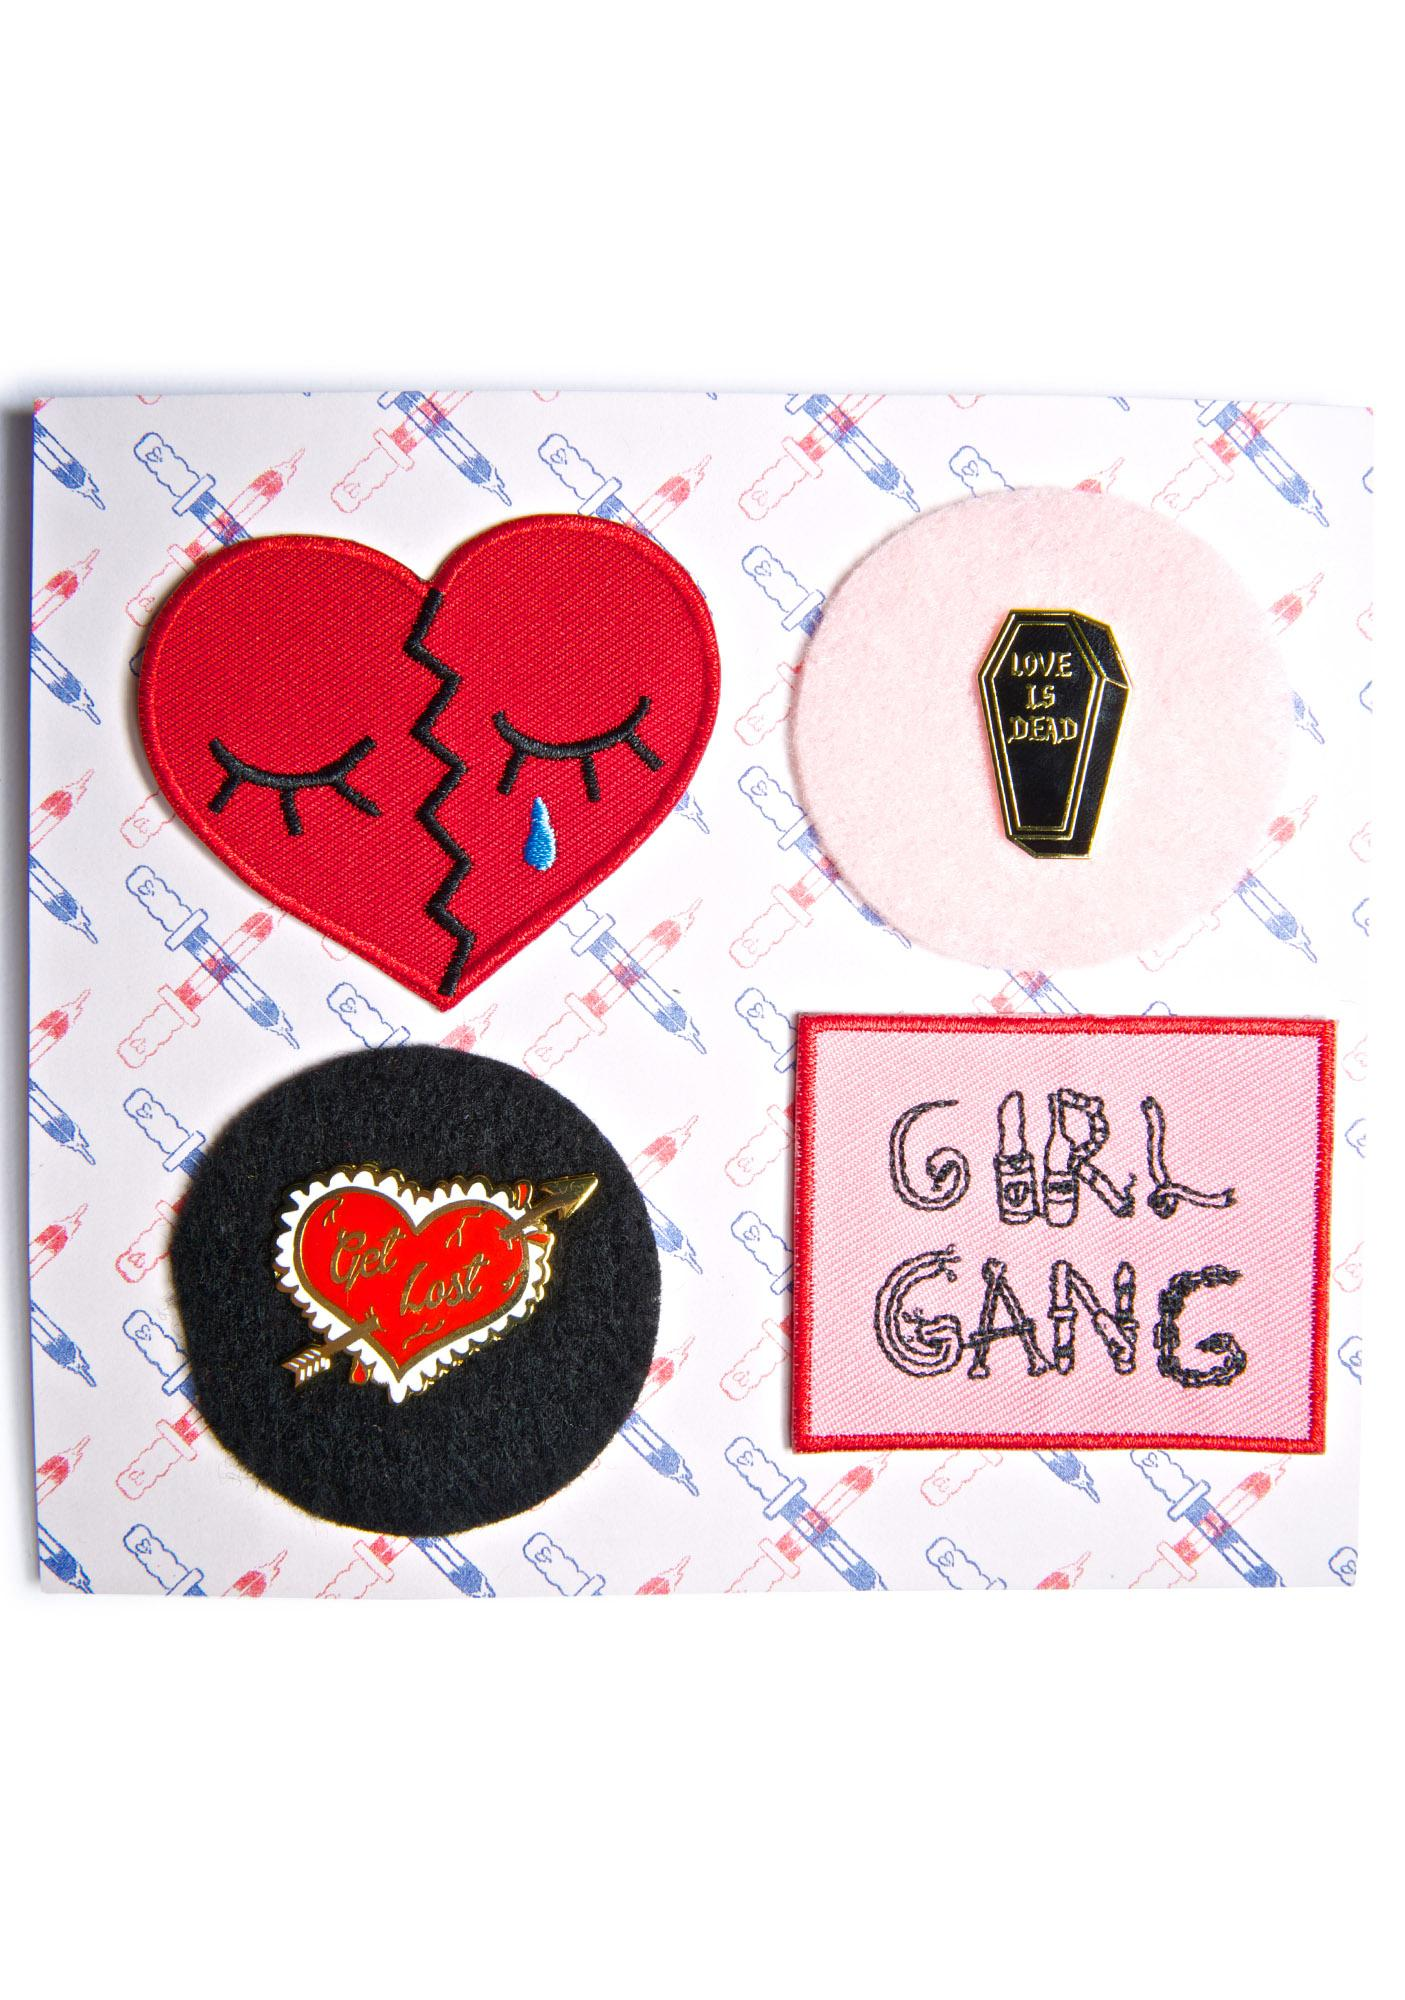 Penelope Meatloaf Luv Suxxx Pin & Patch Set